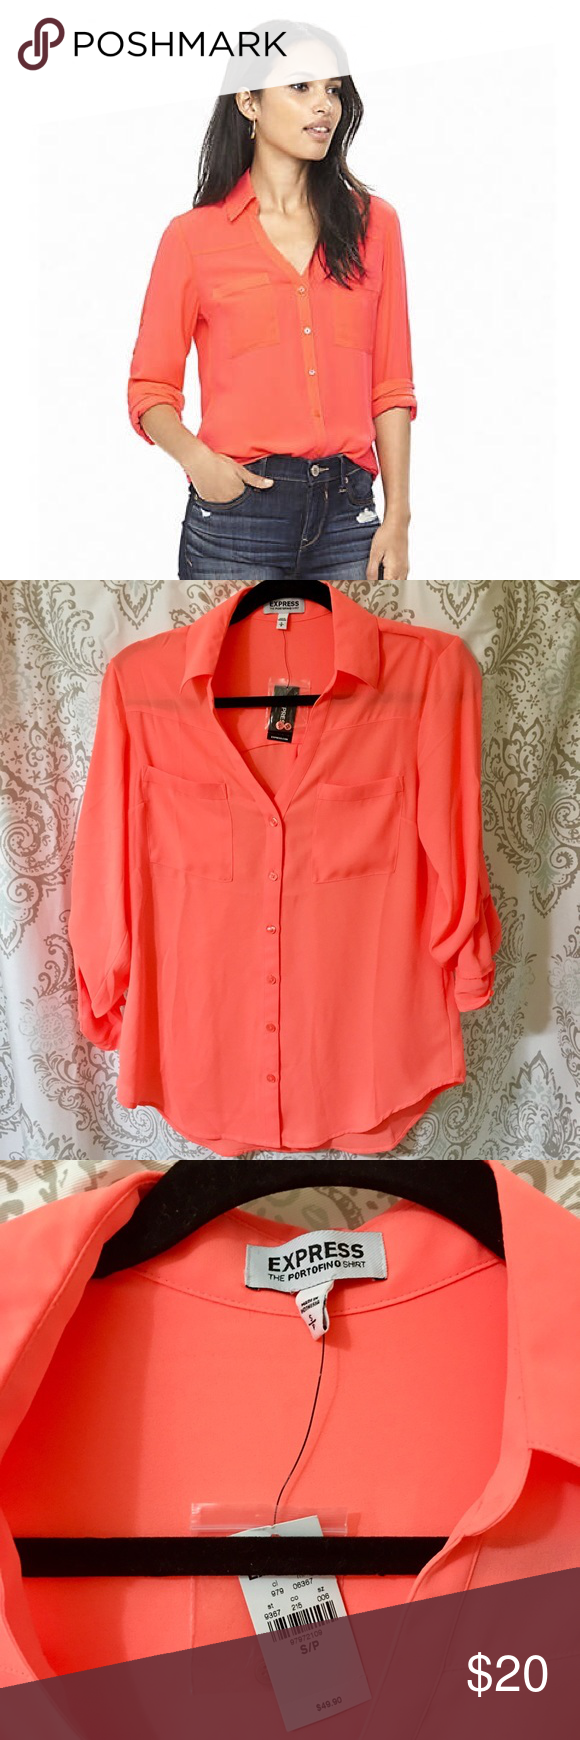 6970d4942939 Neon Orange Express Portofino Shirt New with tags! Convertible sleeve dress  shirt. This can